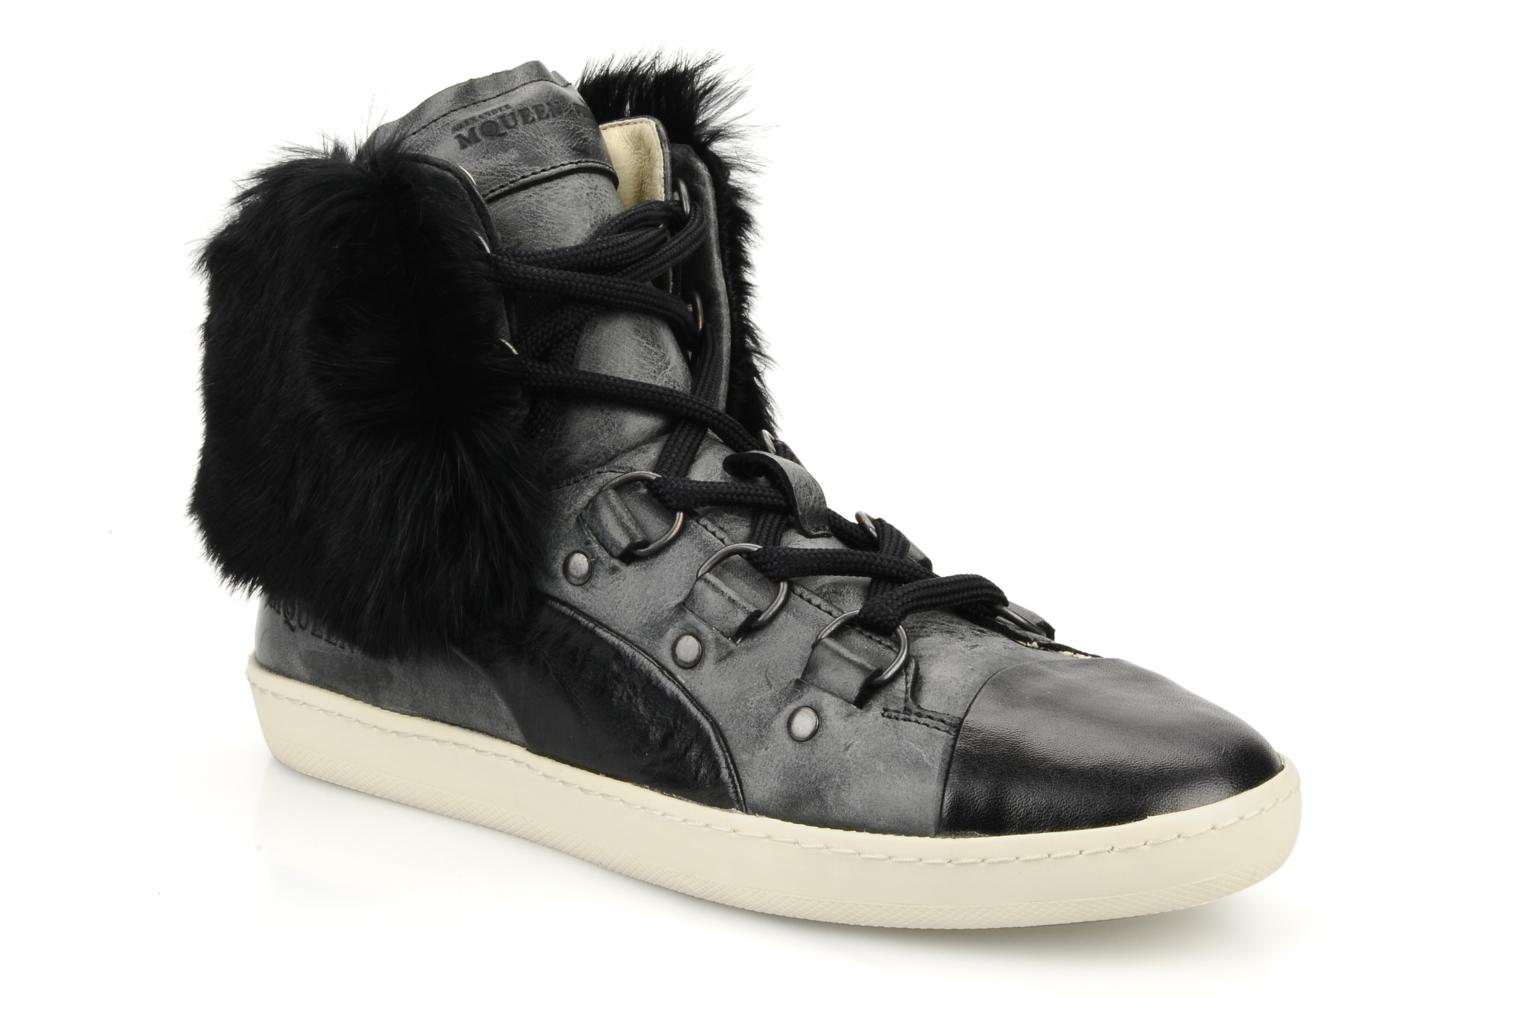 Puma by Alexander Mc Queen W's amq bound mid Trainers Color: Black